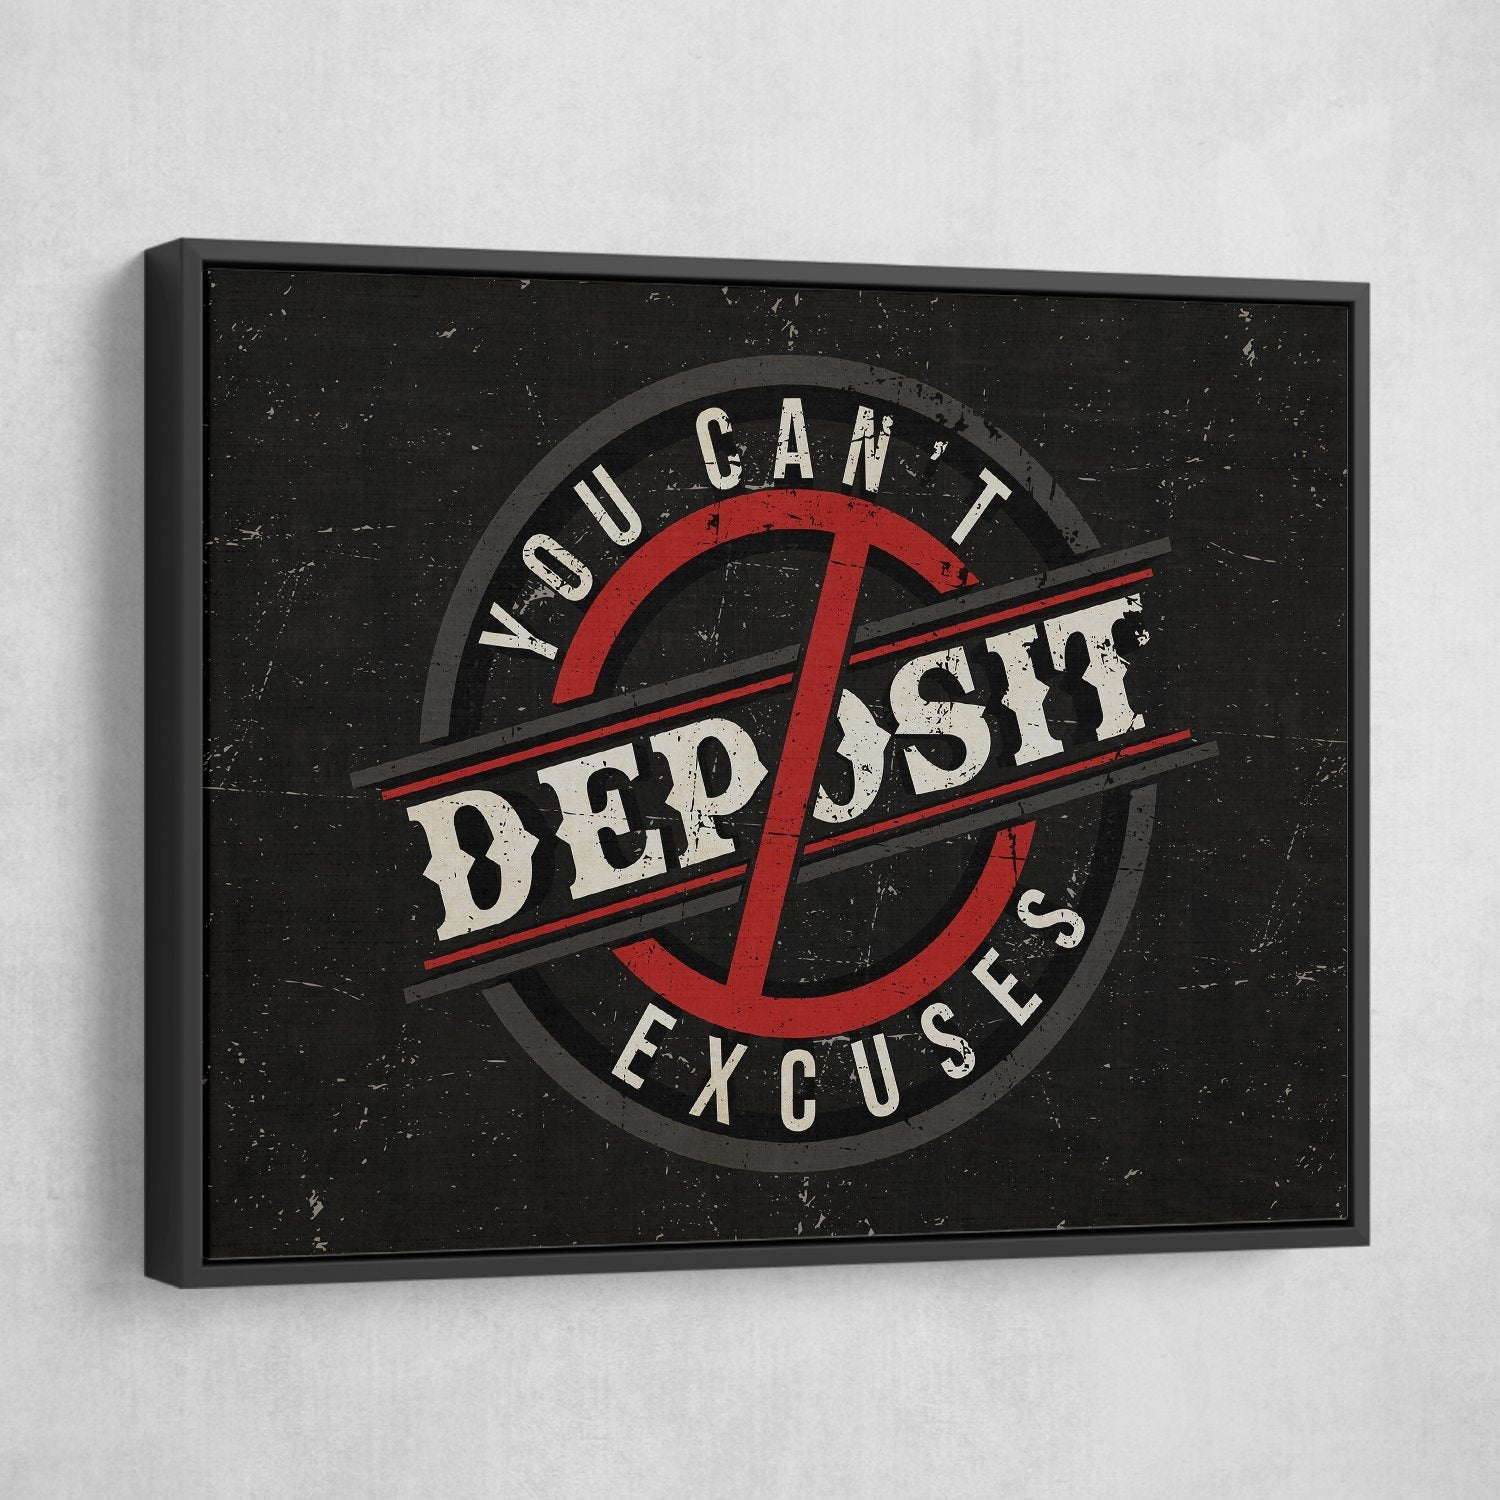 you can't deposit excuses wall art